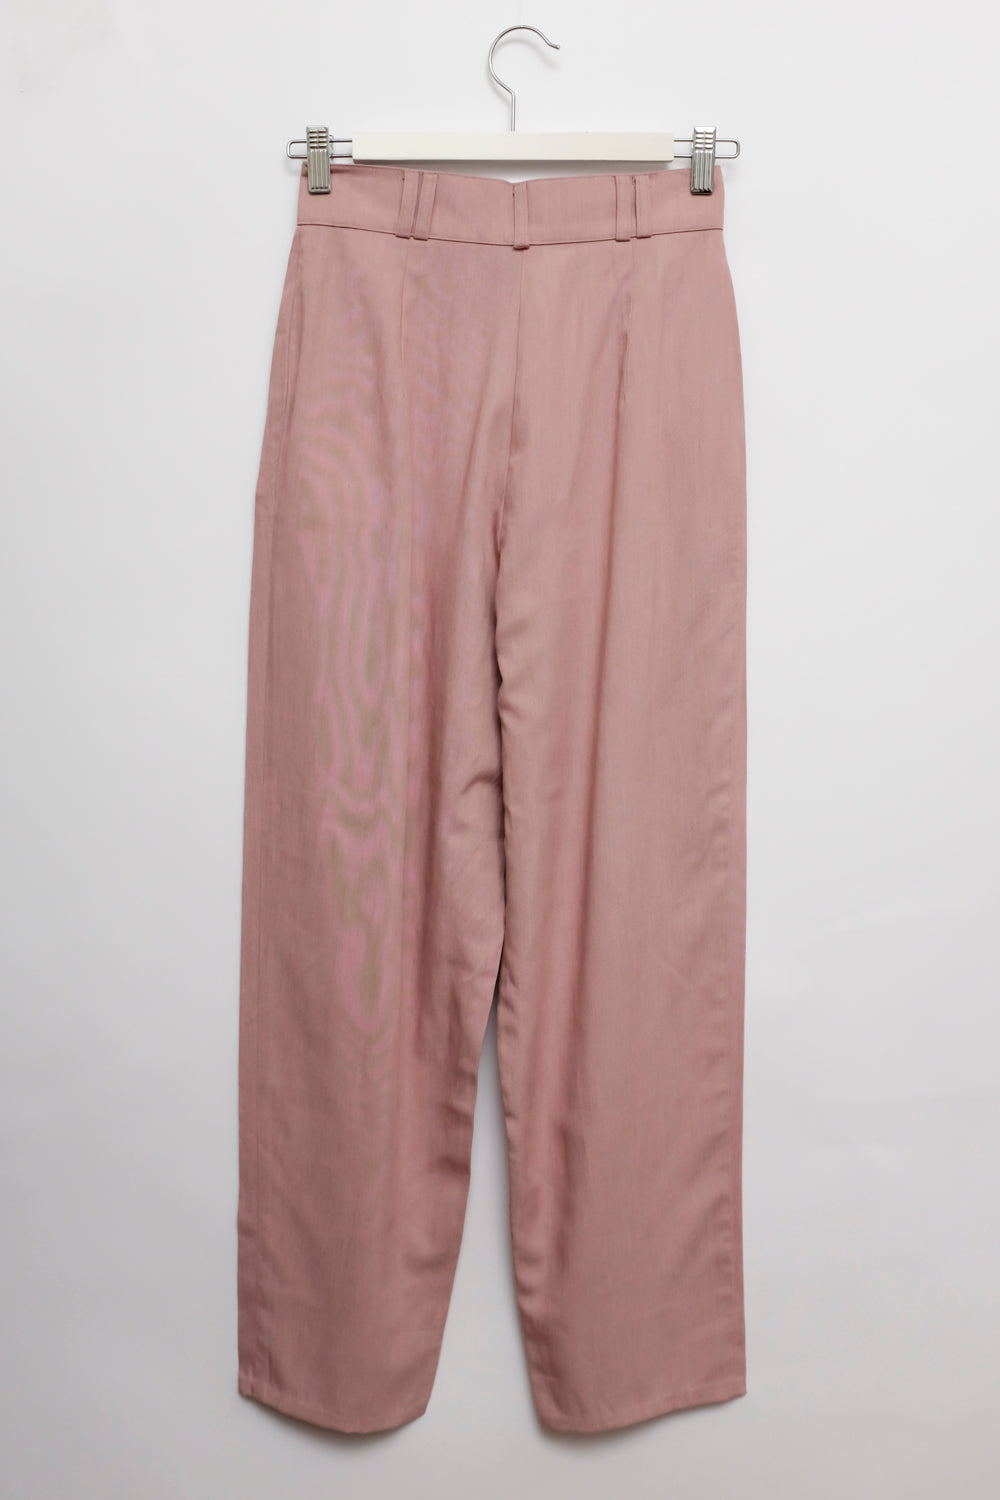 0015_PLEATED ROSE VINTAGE PANTS